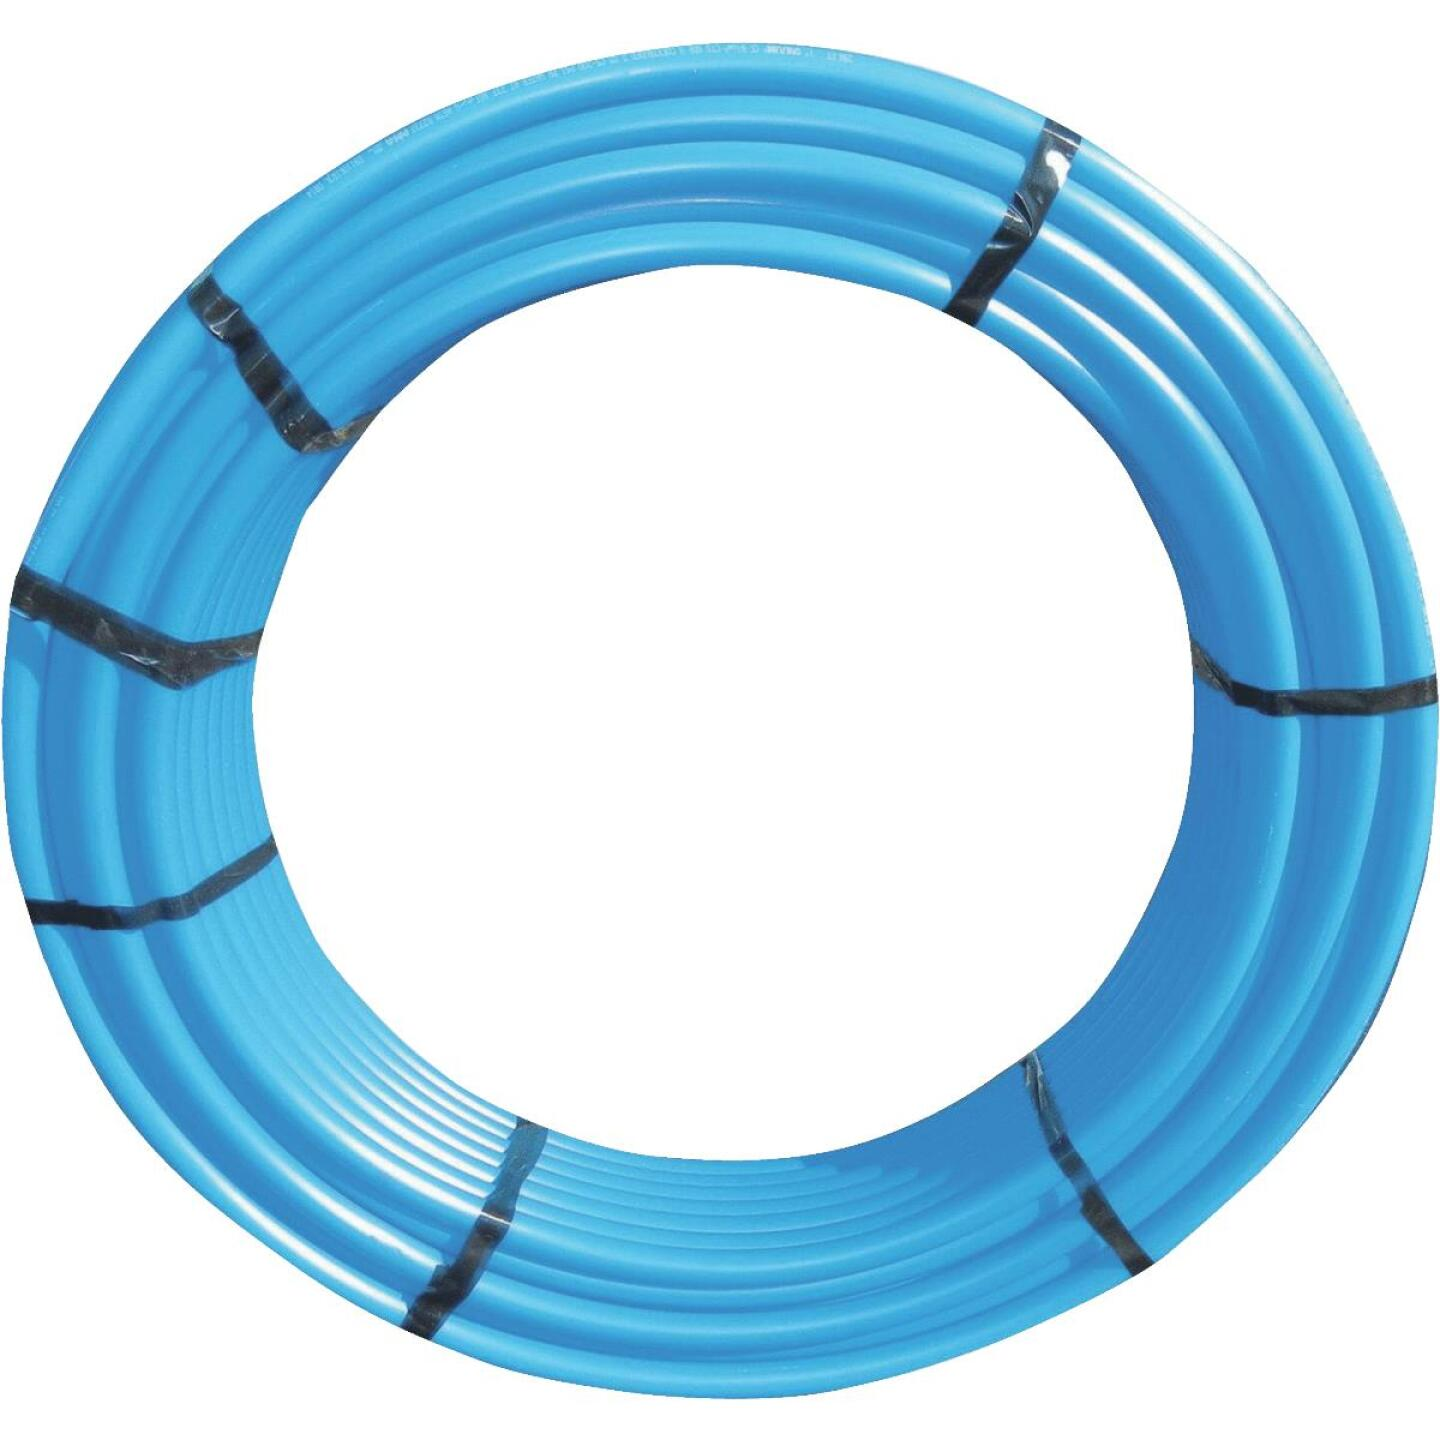 Cresline CE Blue 1 In. X 200 Ft. CTS 200 psi NSF Polyethylene Pipe Image 1